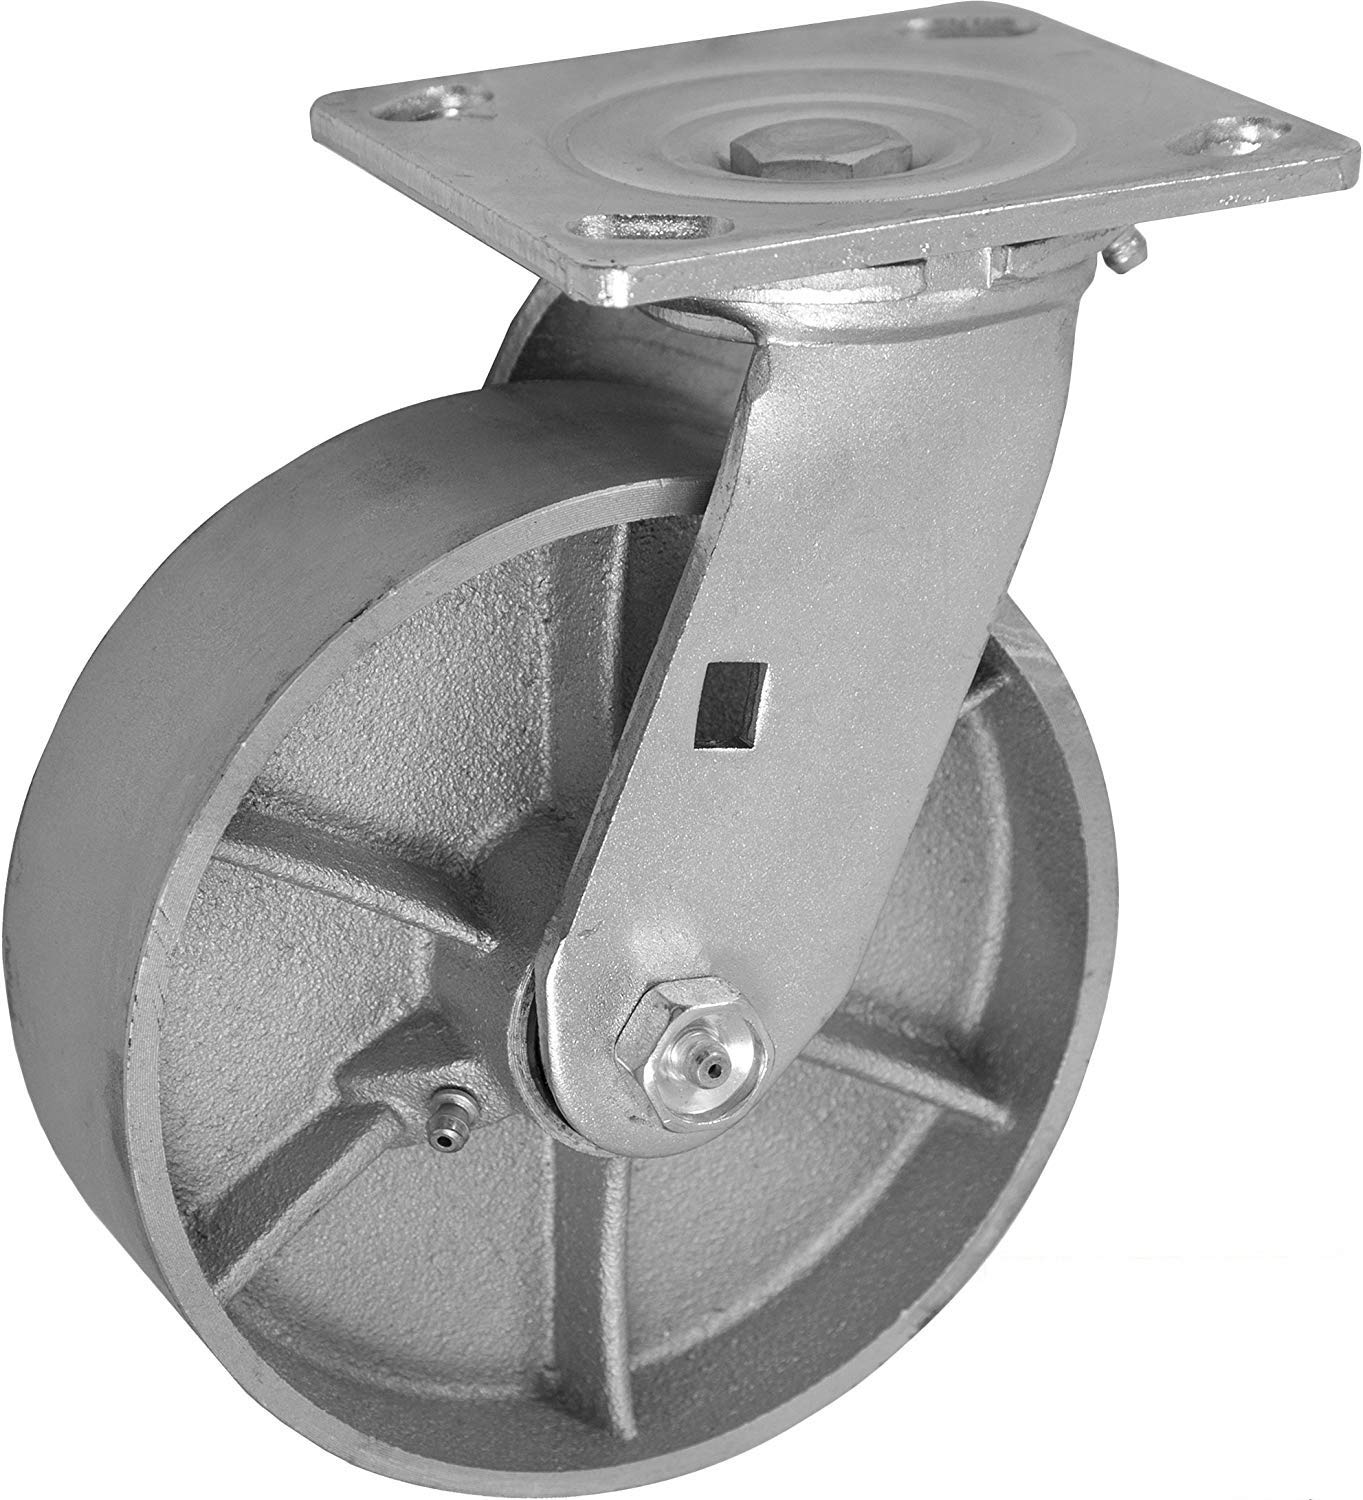 CasterHQ 6'' X 2'' INCH Swivel Caster - SEMI-Steel CAST Iron Wheel - 1200 LBS Capacity - 6 inch x 2 inch - Heavy Duty Industrial/Commercial 7-1/2'' Overall Height